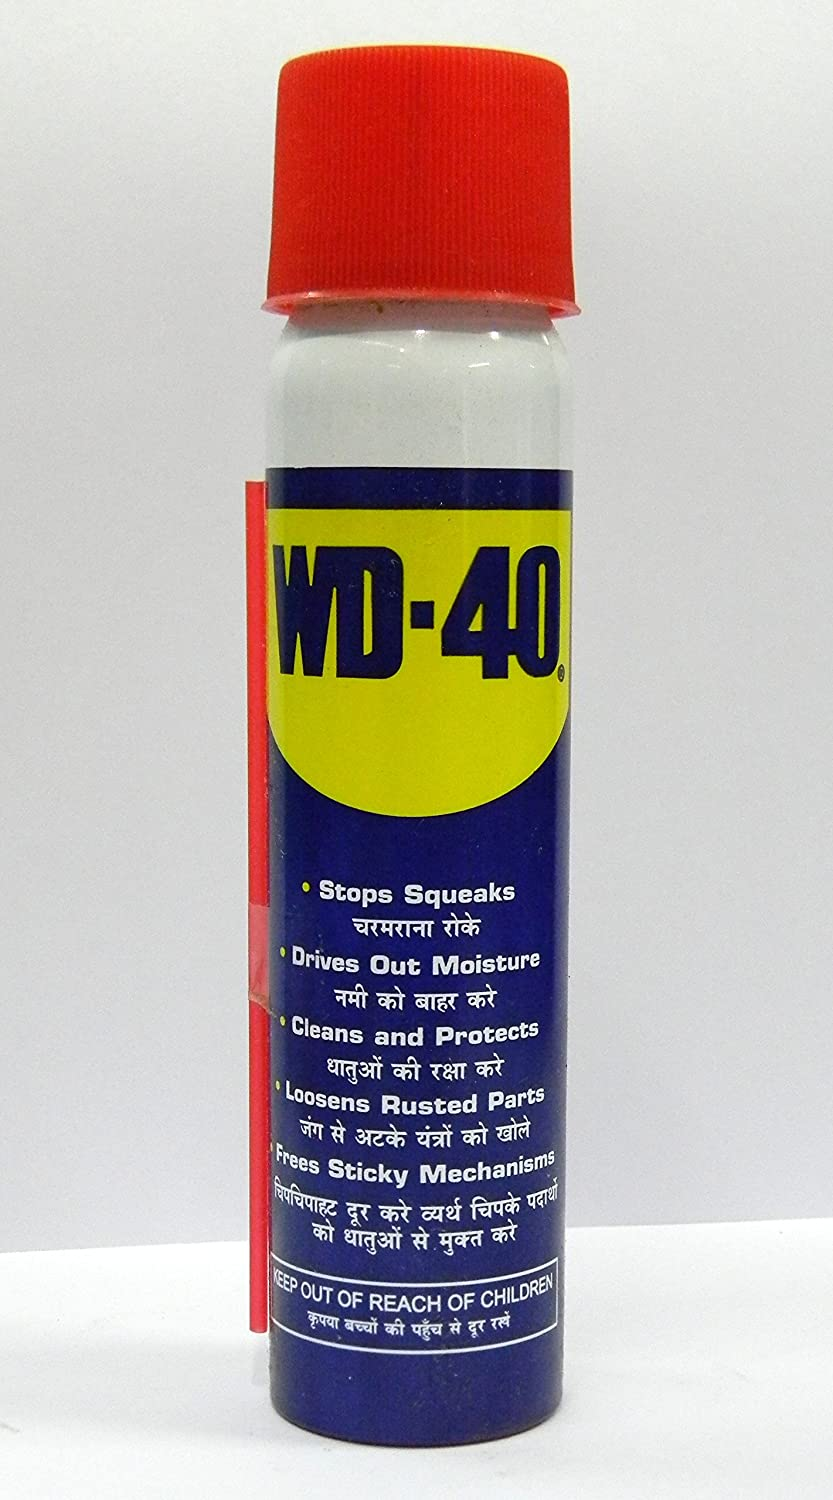 WD40 Multi-Use Product Spray with Straw (63.8 g)